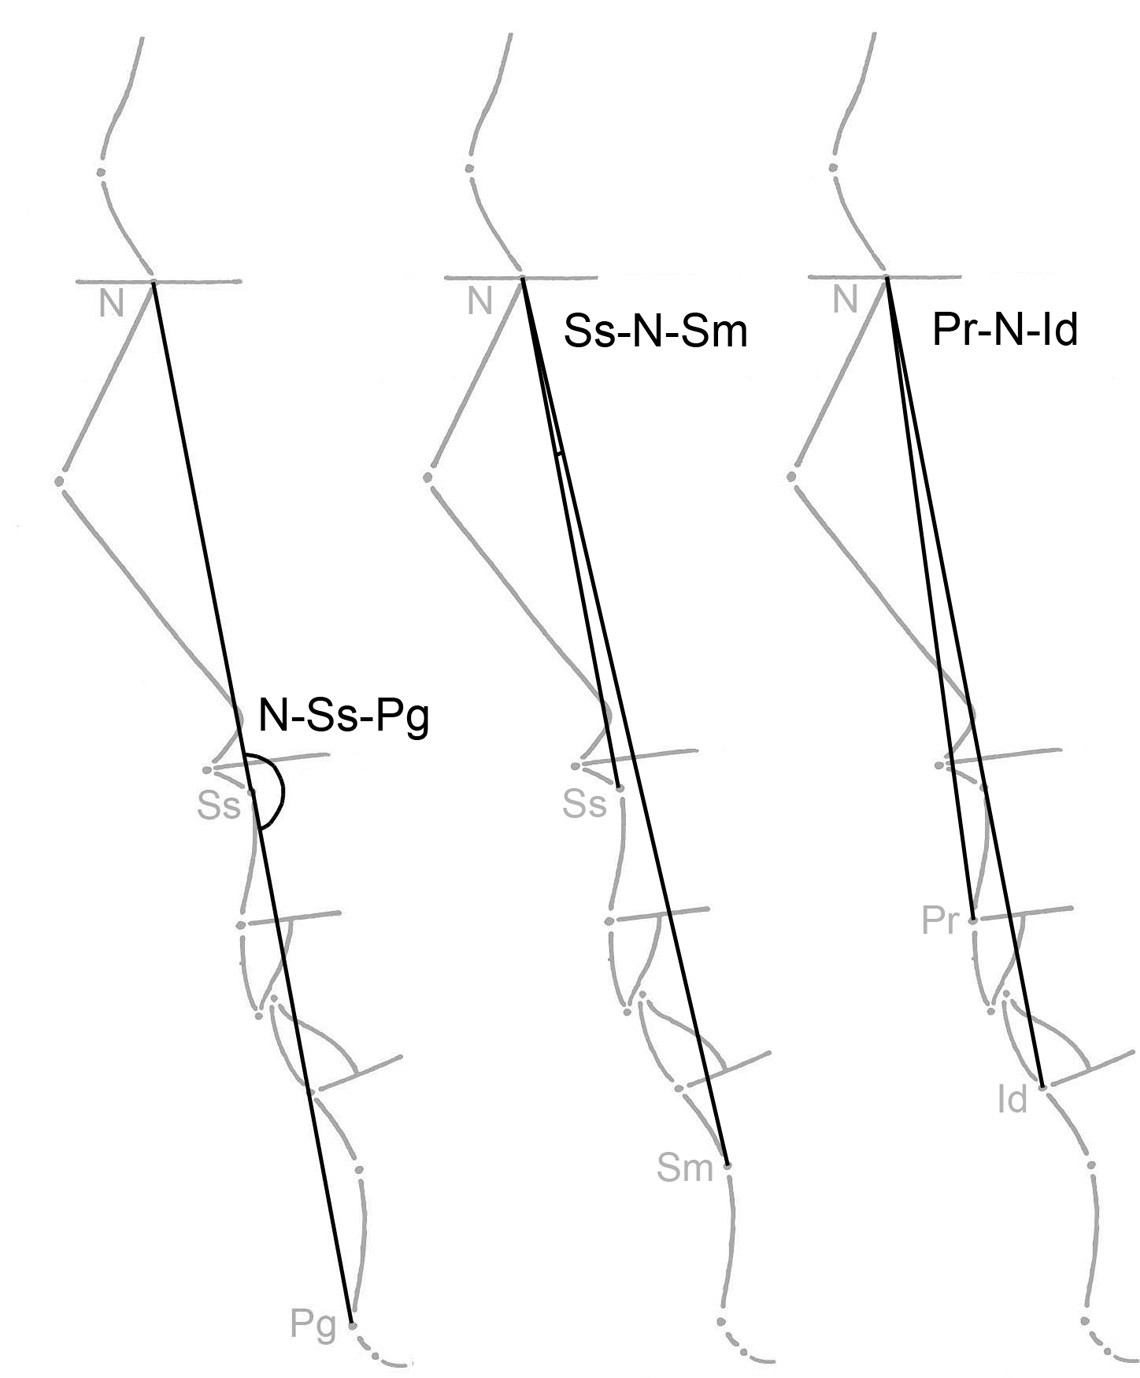 Fig. 2. The illustration of measurement of three important angle variables used in this study (N-Ss-Pg, Ss-N-Sm, Pr, N-Id)